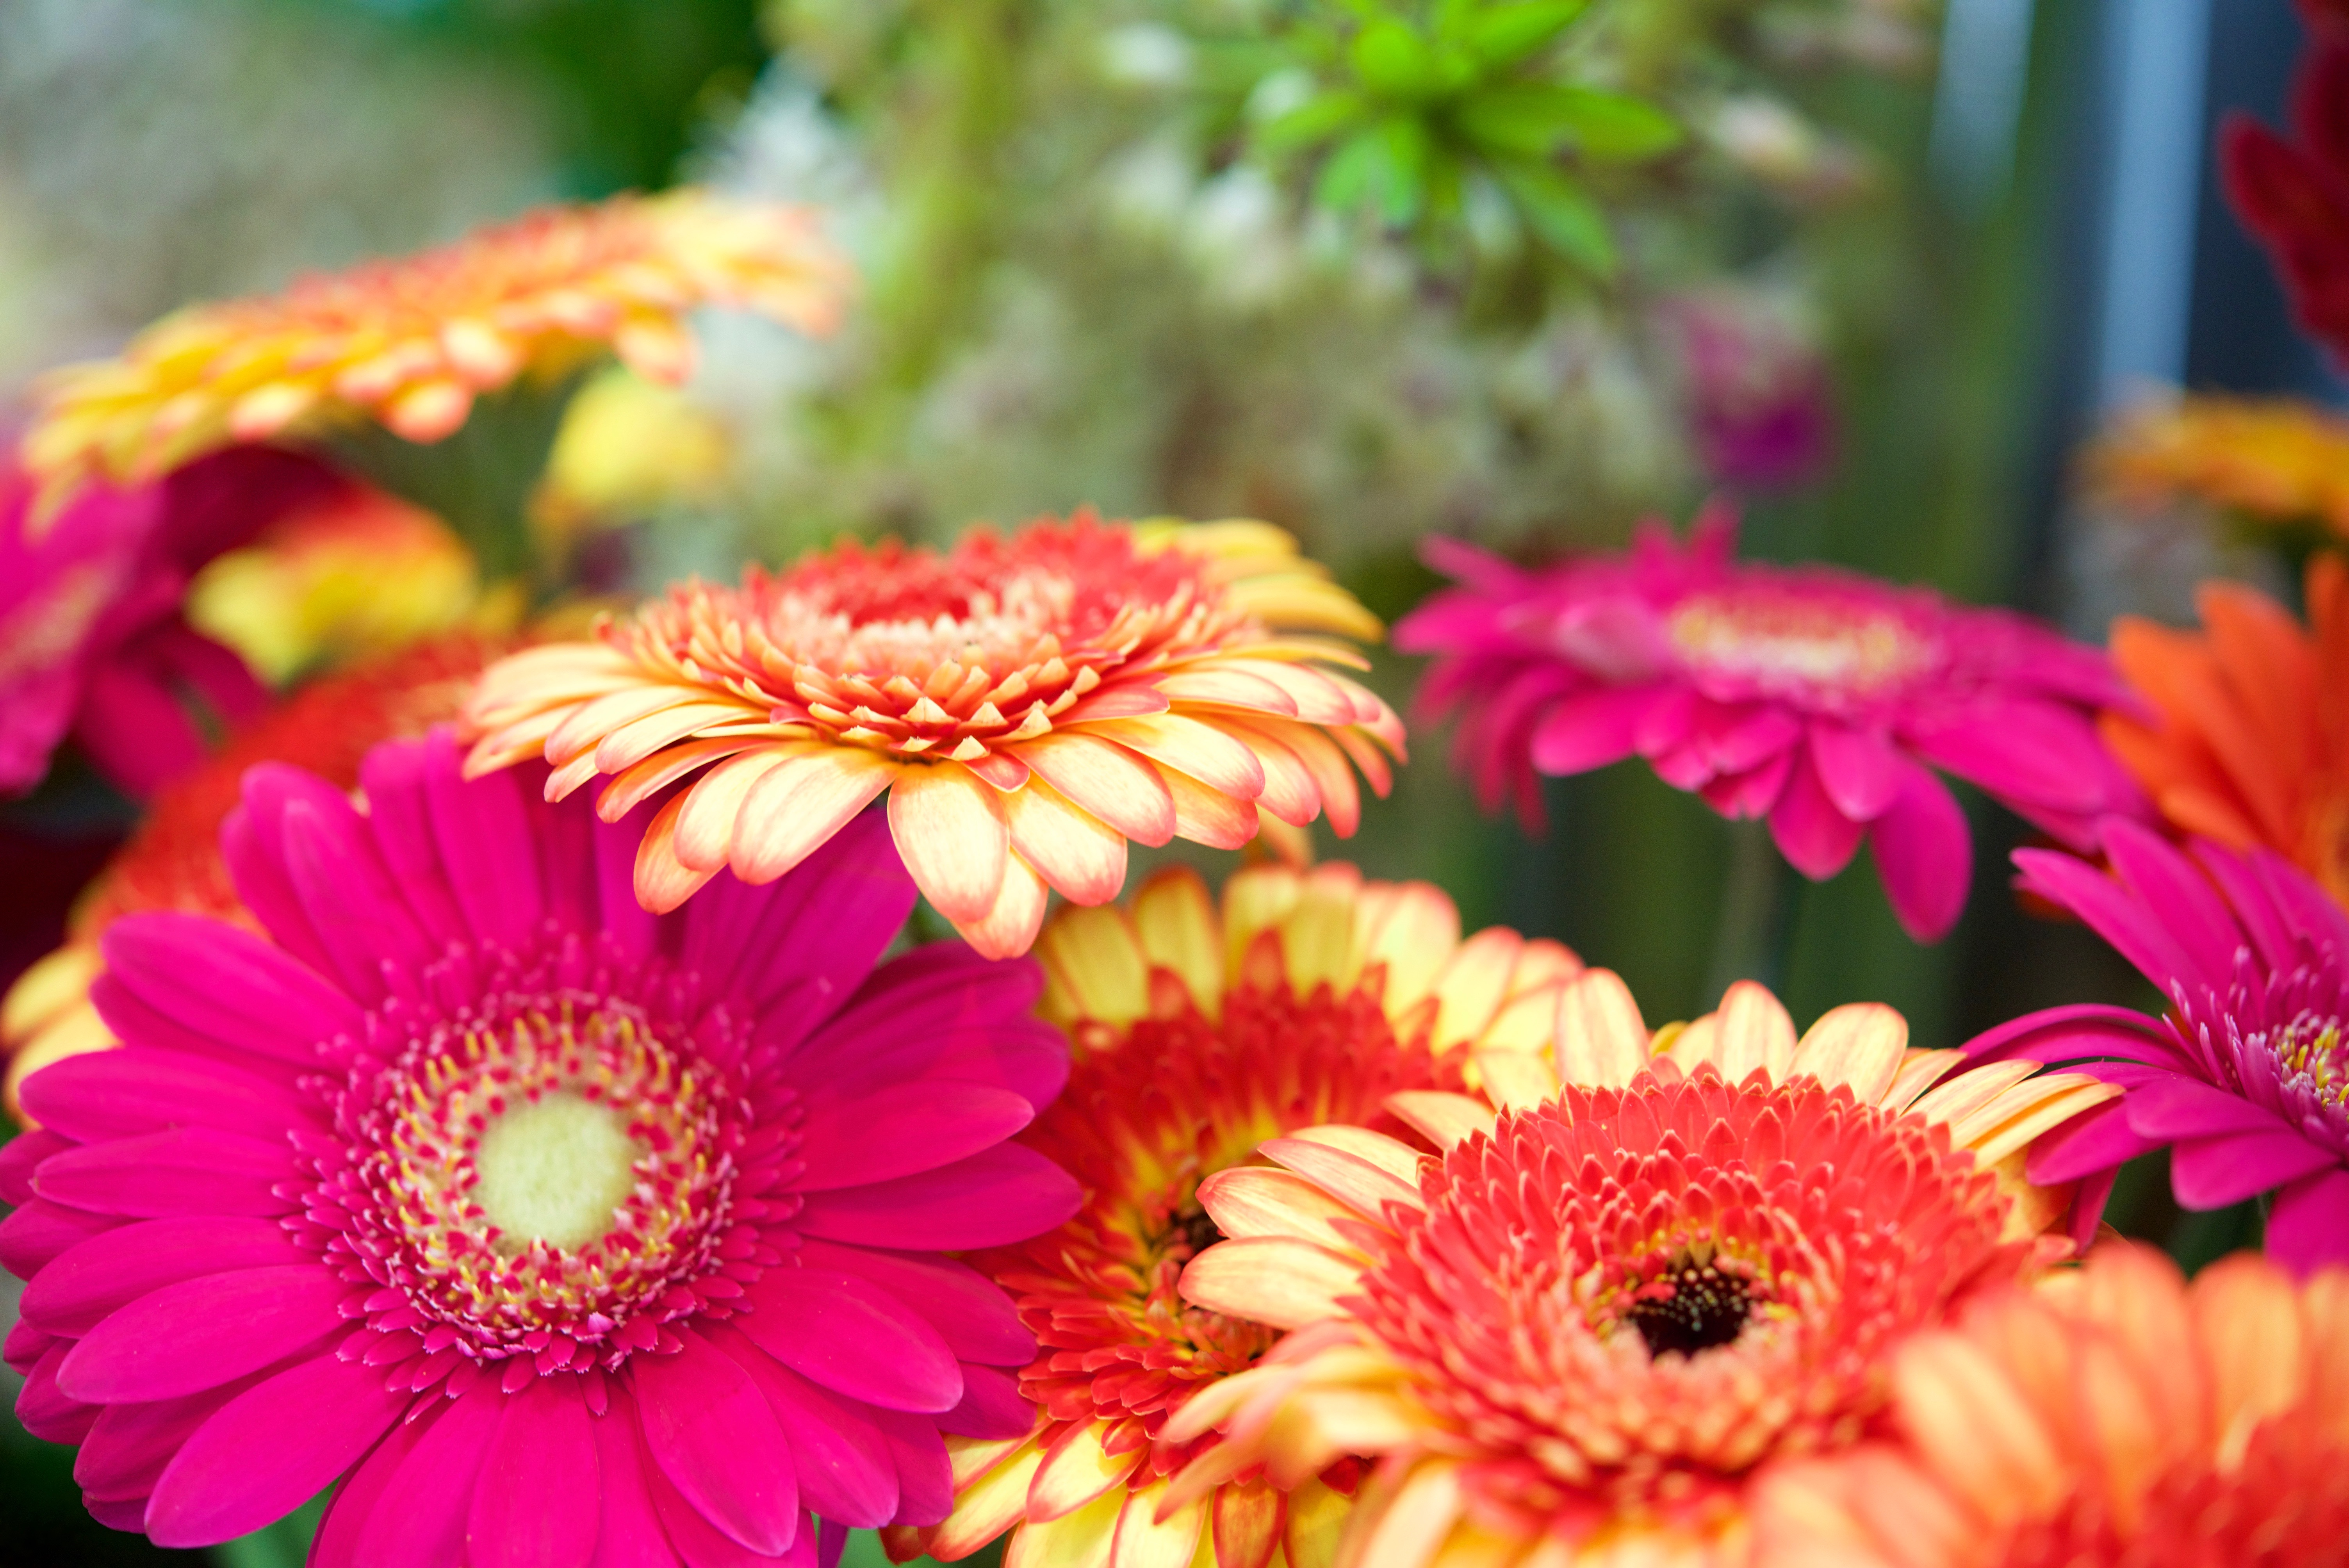 How to Care for Gerbera Daisies Inside   Home Guides   SF Gate Colorful House Plants For Shade Html on flowers for shade, colorful trees, colorful drought tolerant plants, colorful orchids, colorful plants for shady areas, flowers that thrive in shade, colorful container plants, fruit trees for shade, colorful vegetables, colorful foliage, colorful potted plants, colorful plants for landscaping, colorful raindrops, palm trees for shade, colorful tropical plants, colorful succulents, colorful perennials, colorful florida plants, colorful air plants, colorful evergreen plants,